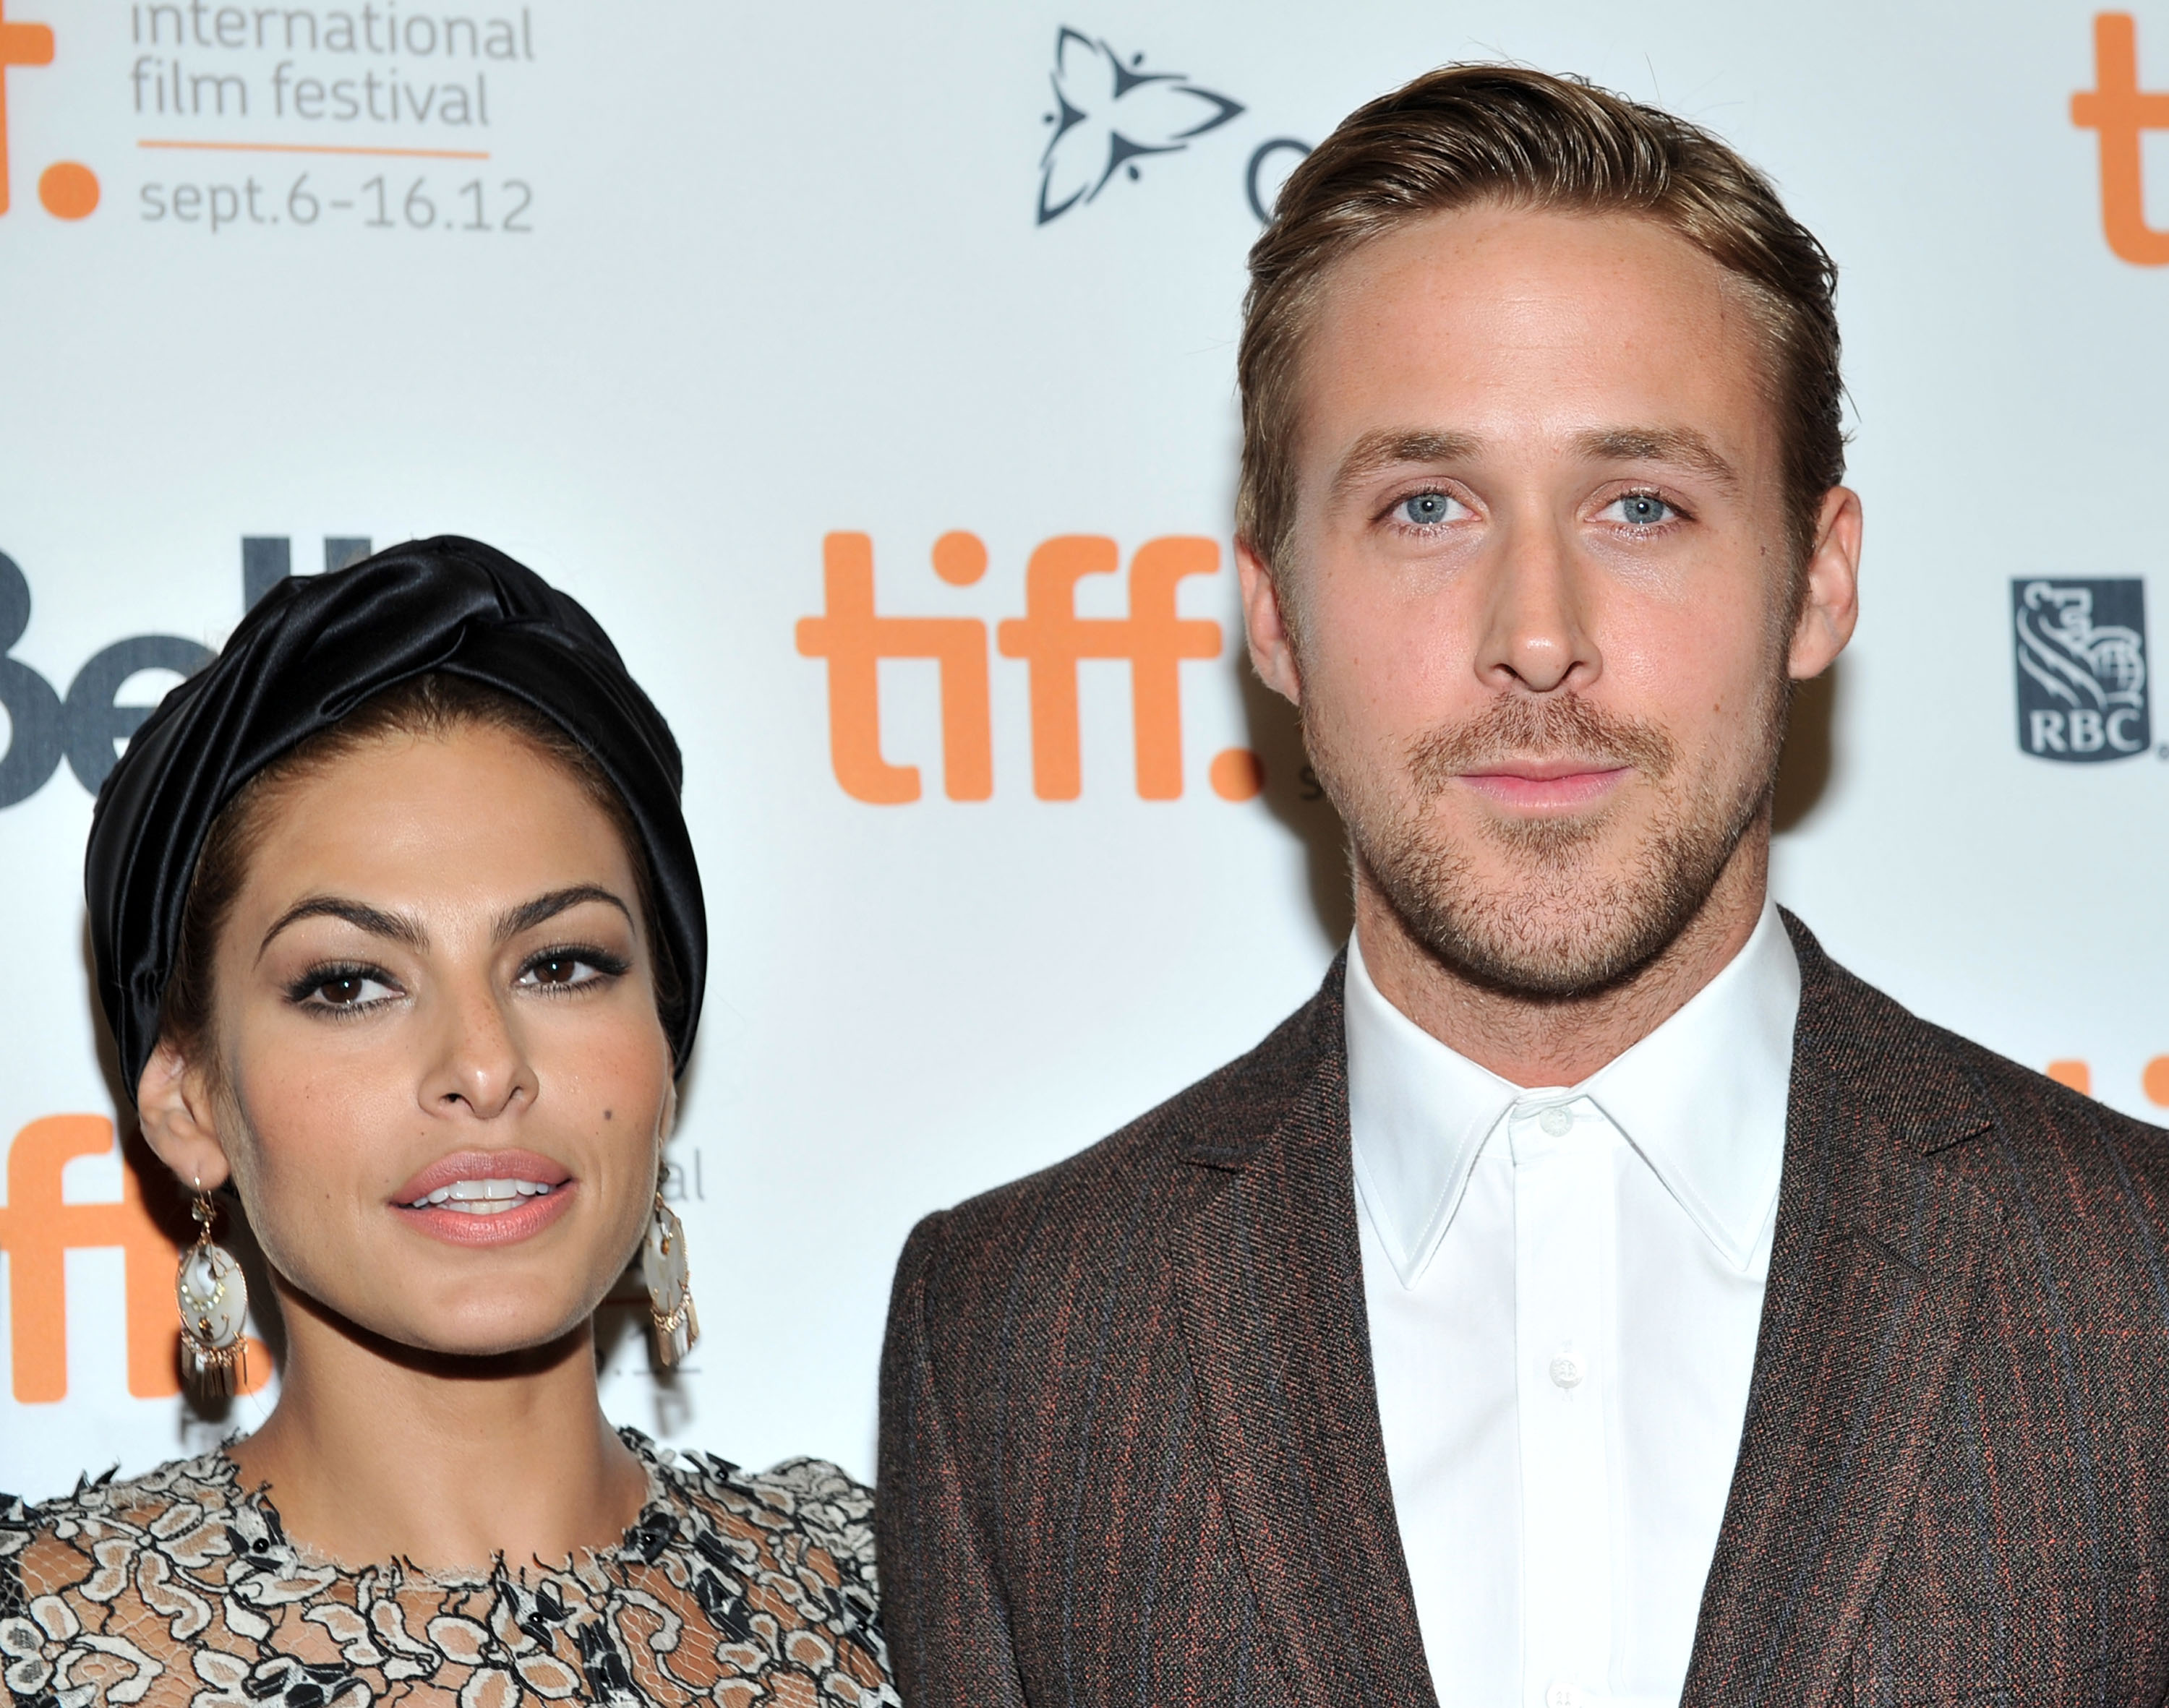 Life-ruiner Ryan Gosling says he's 'supposed to be with' Eva Mendes